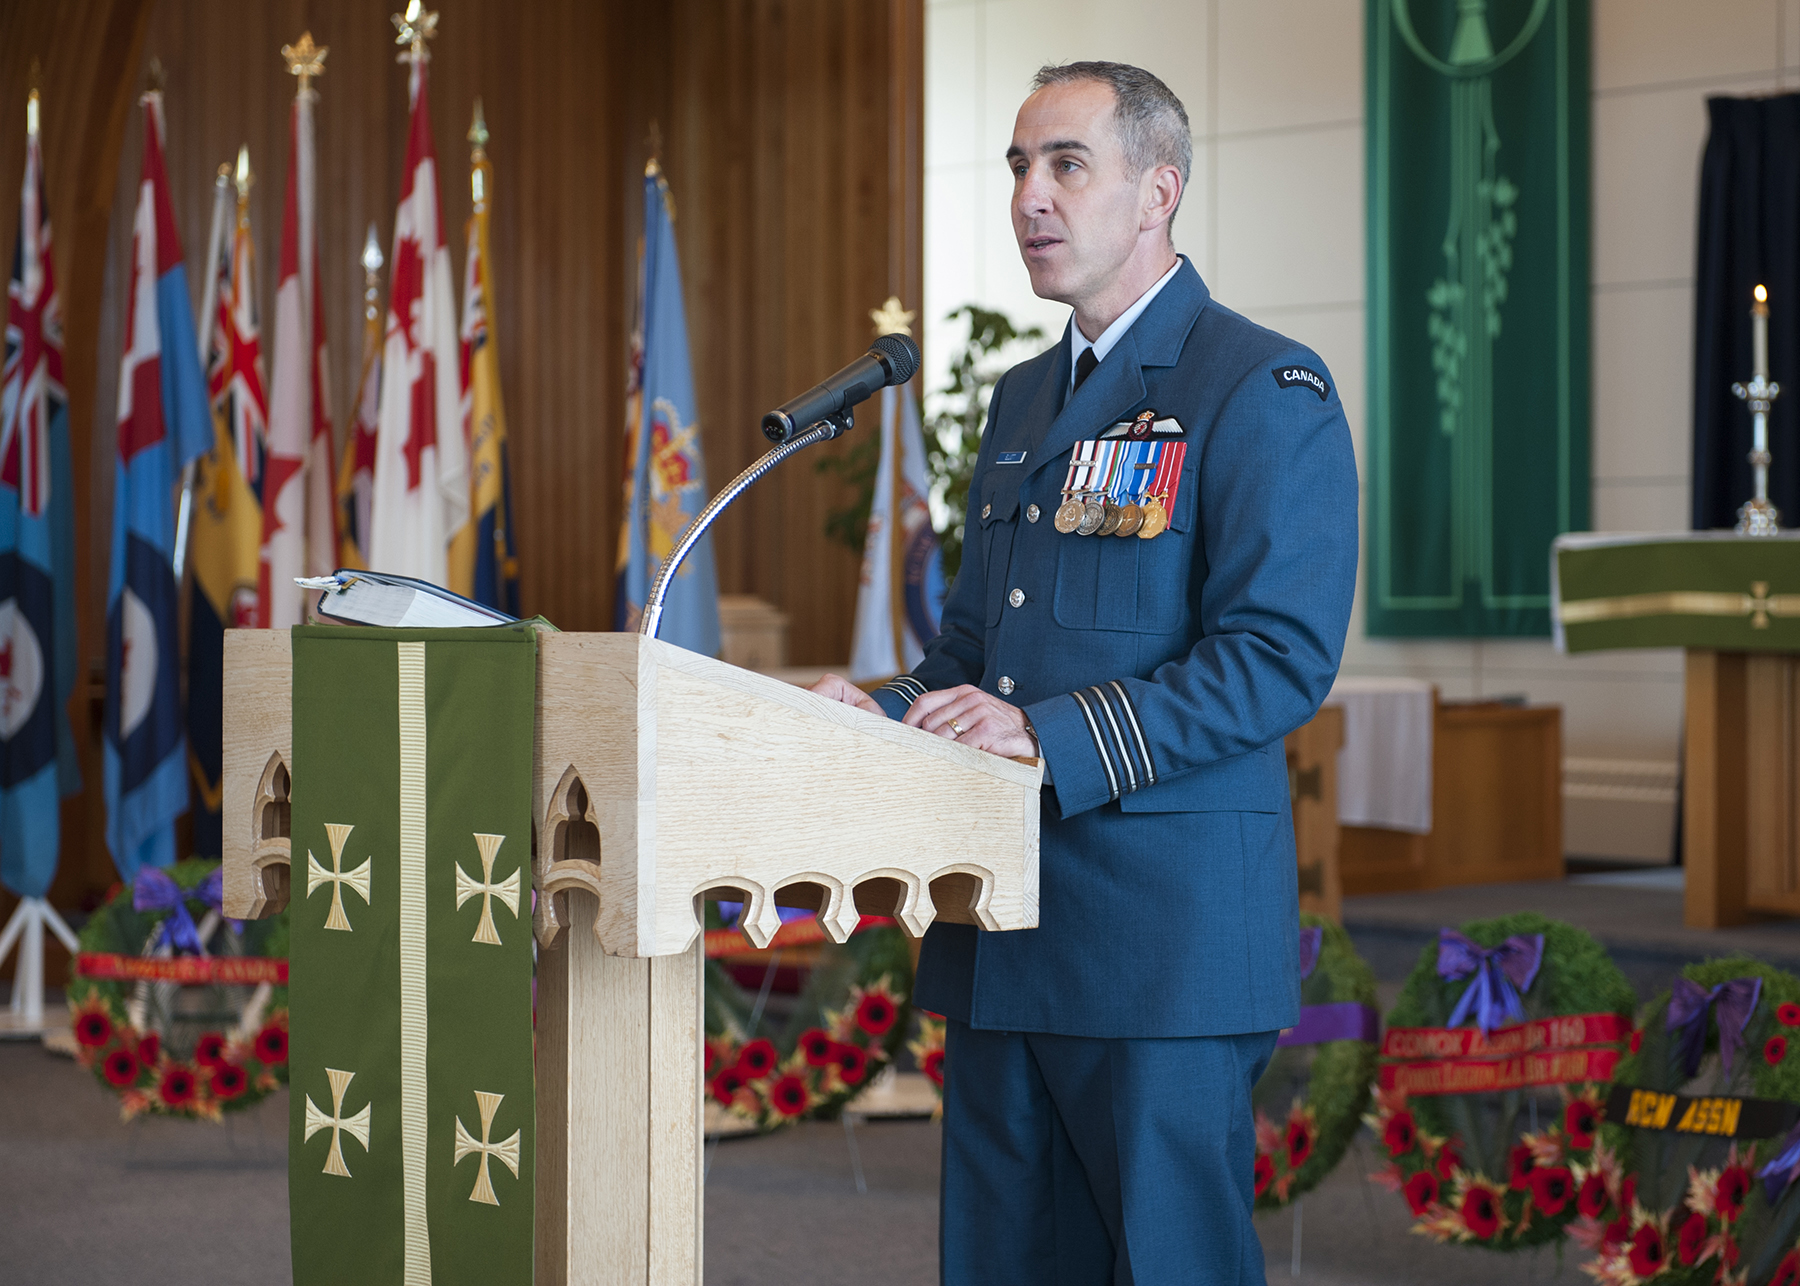 19 Wing Comox, British Columbia, acting wing commander Lieutenant-Colonel Bryn Elliott speaks to veterans, Canadian Armed Forces members and families, and guests in St. Michael and all Angels Chapel during the Battle of Britain Commemorative Service held September 18, 2016. PHOTO: Sergeant Halina Folfas, CX03-2016-0374-16